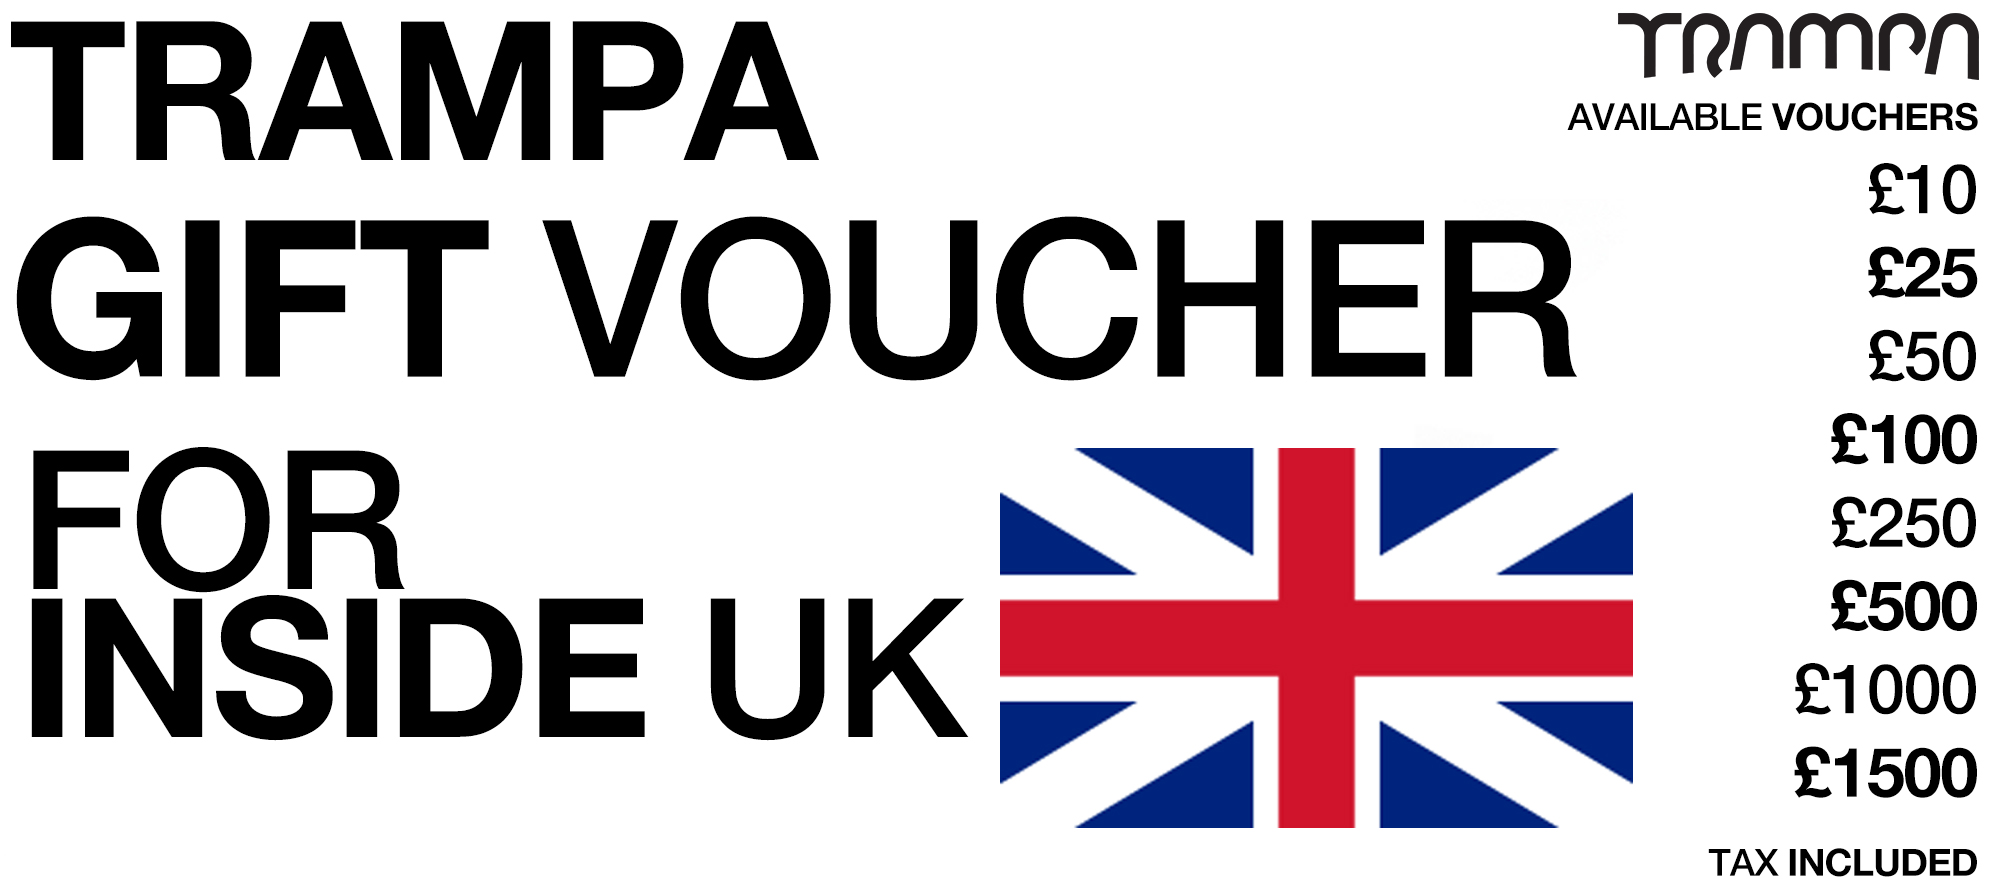 Gift Voucher for UK Customers only